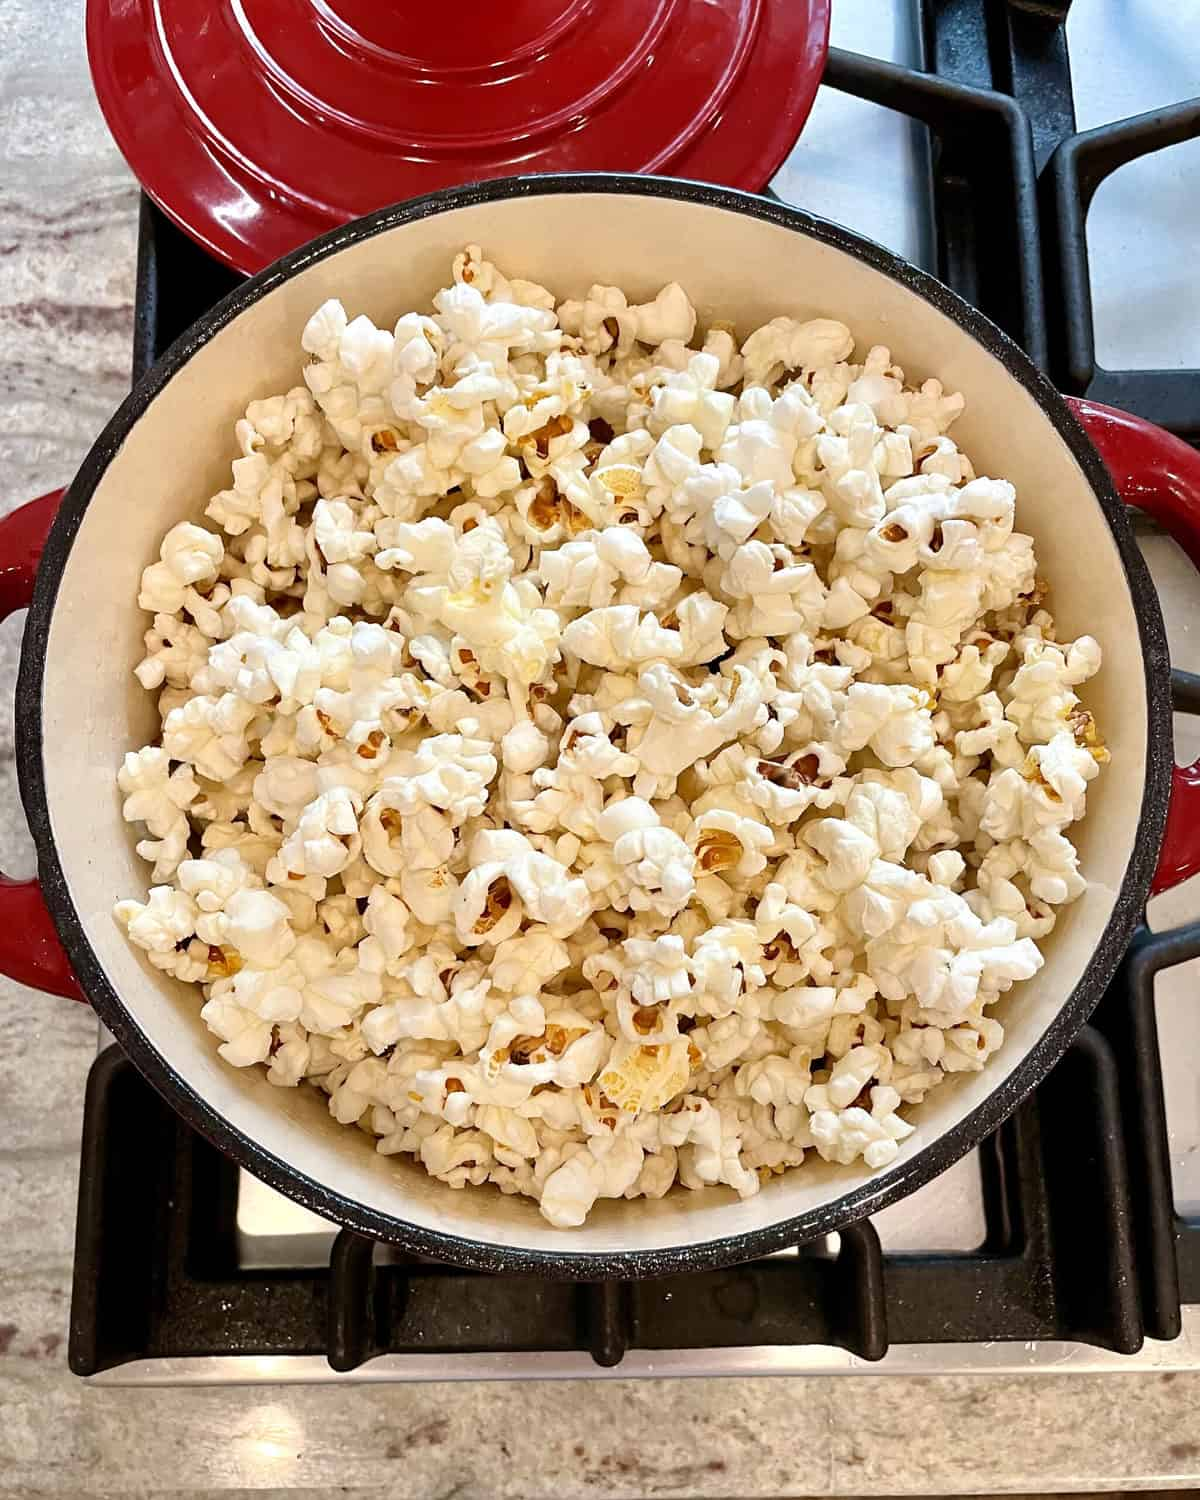 Stovetop Popcorn in a red pot on the stove.